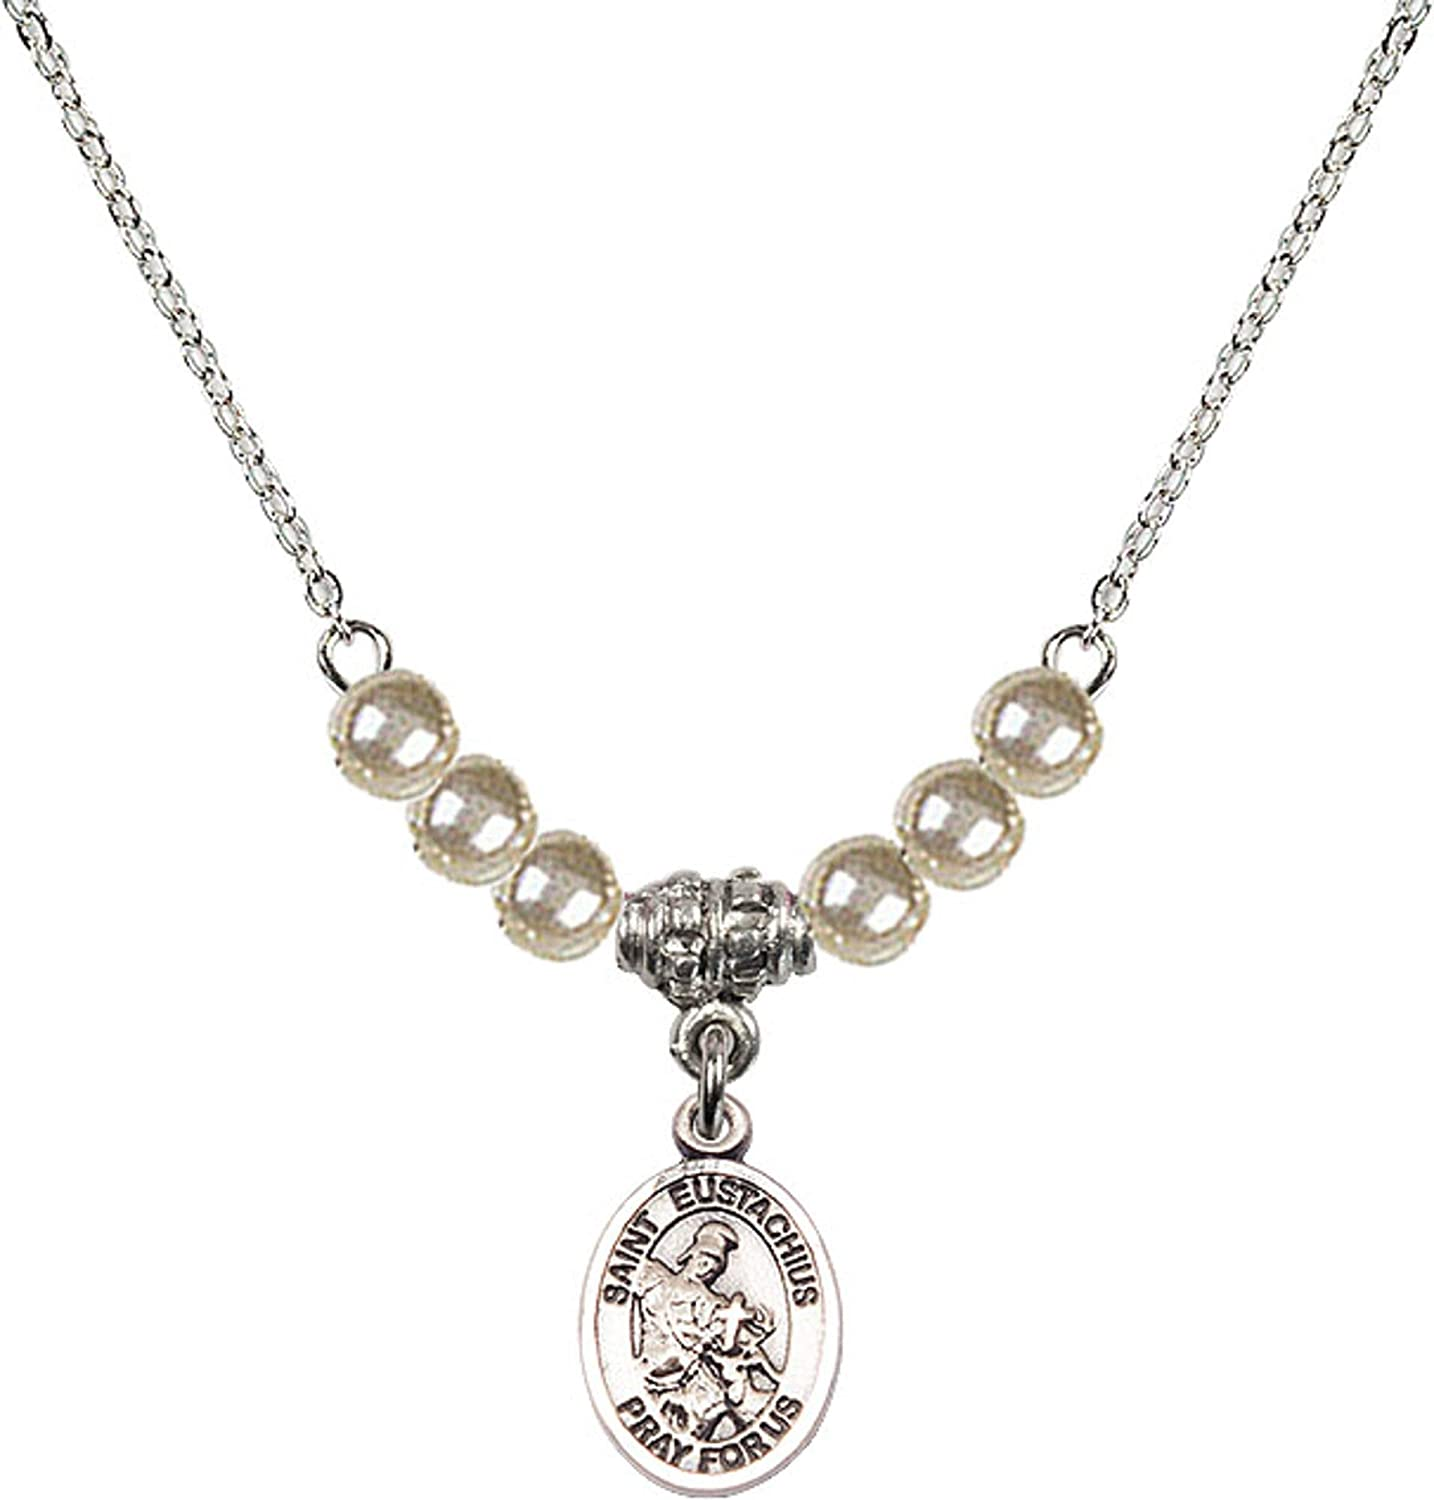 Bonyak Jewelry 18 Inch Rhodium Plated Necklace w// 4mm Faux-Pearl Beads and Saint Eustachius Charm